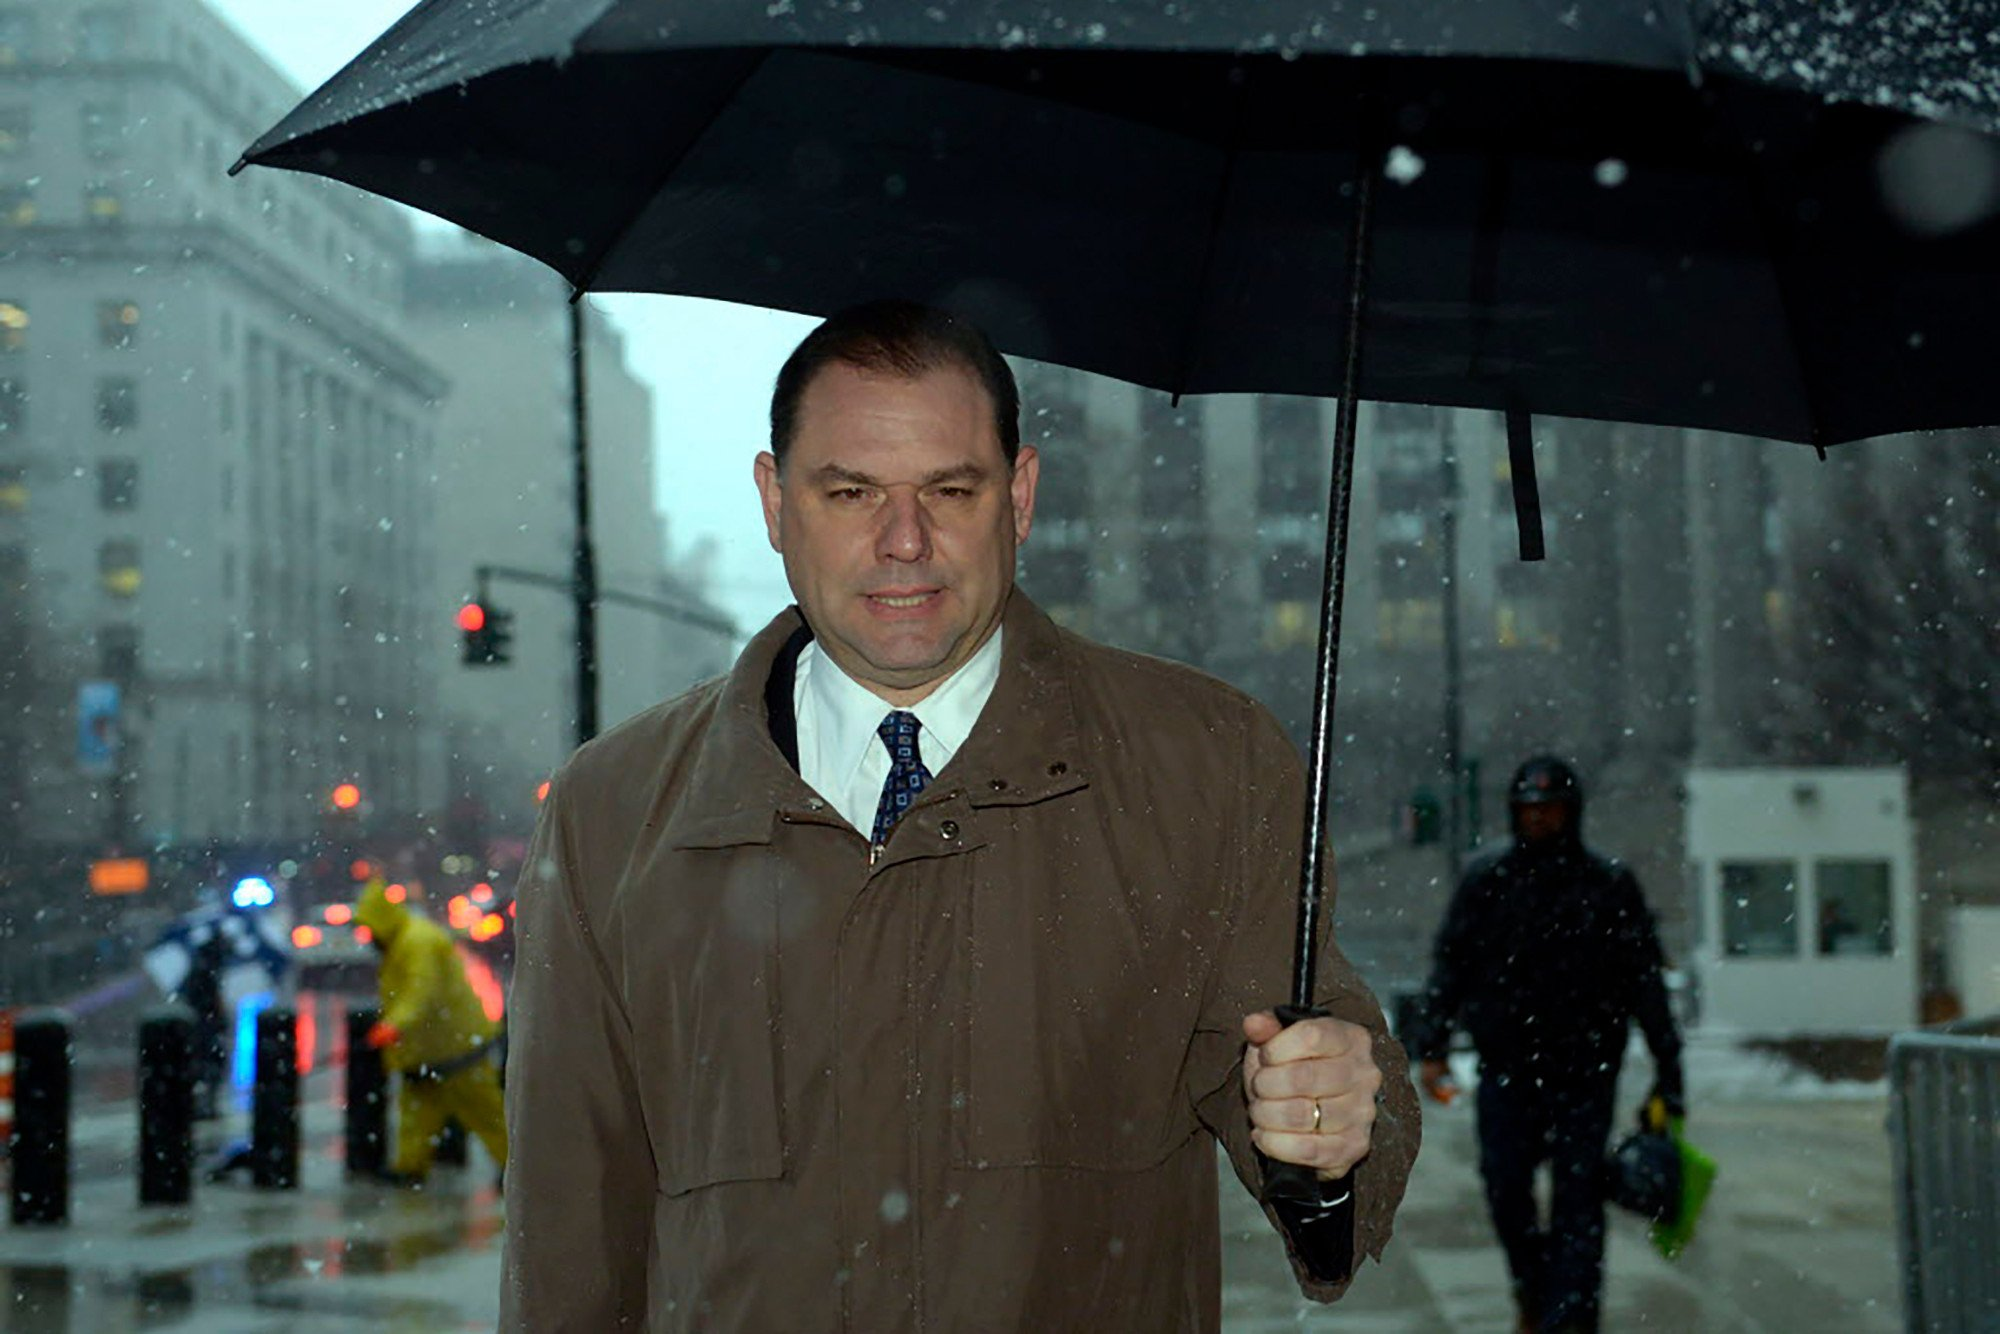 Ex-Cuomo aide convicted on corruption charges